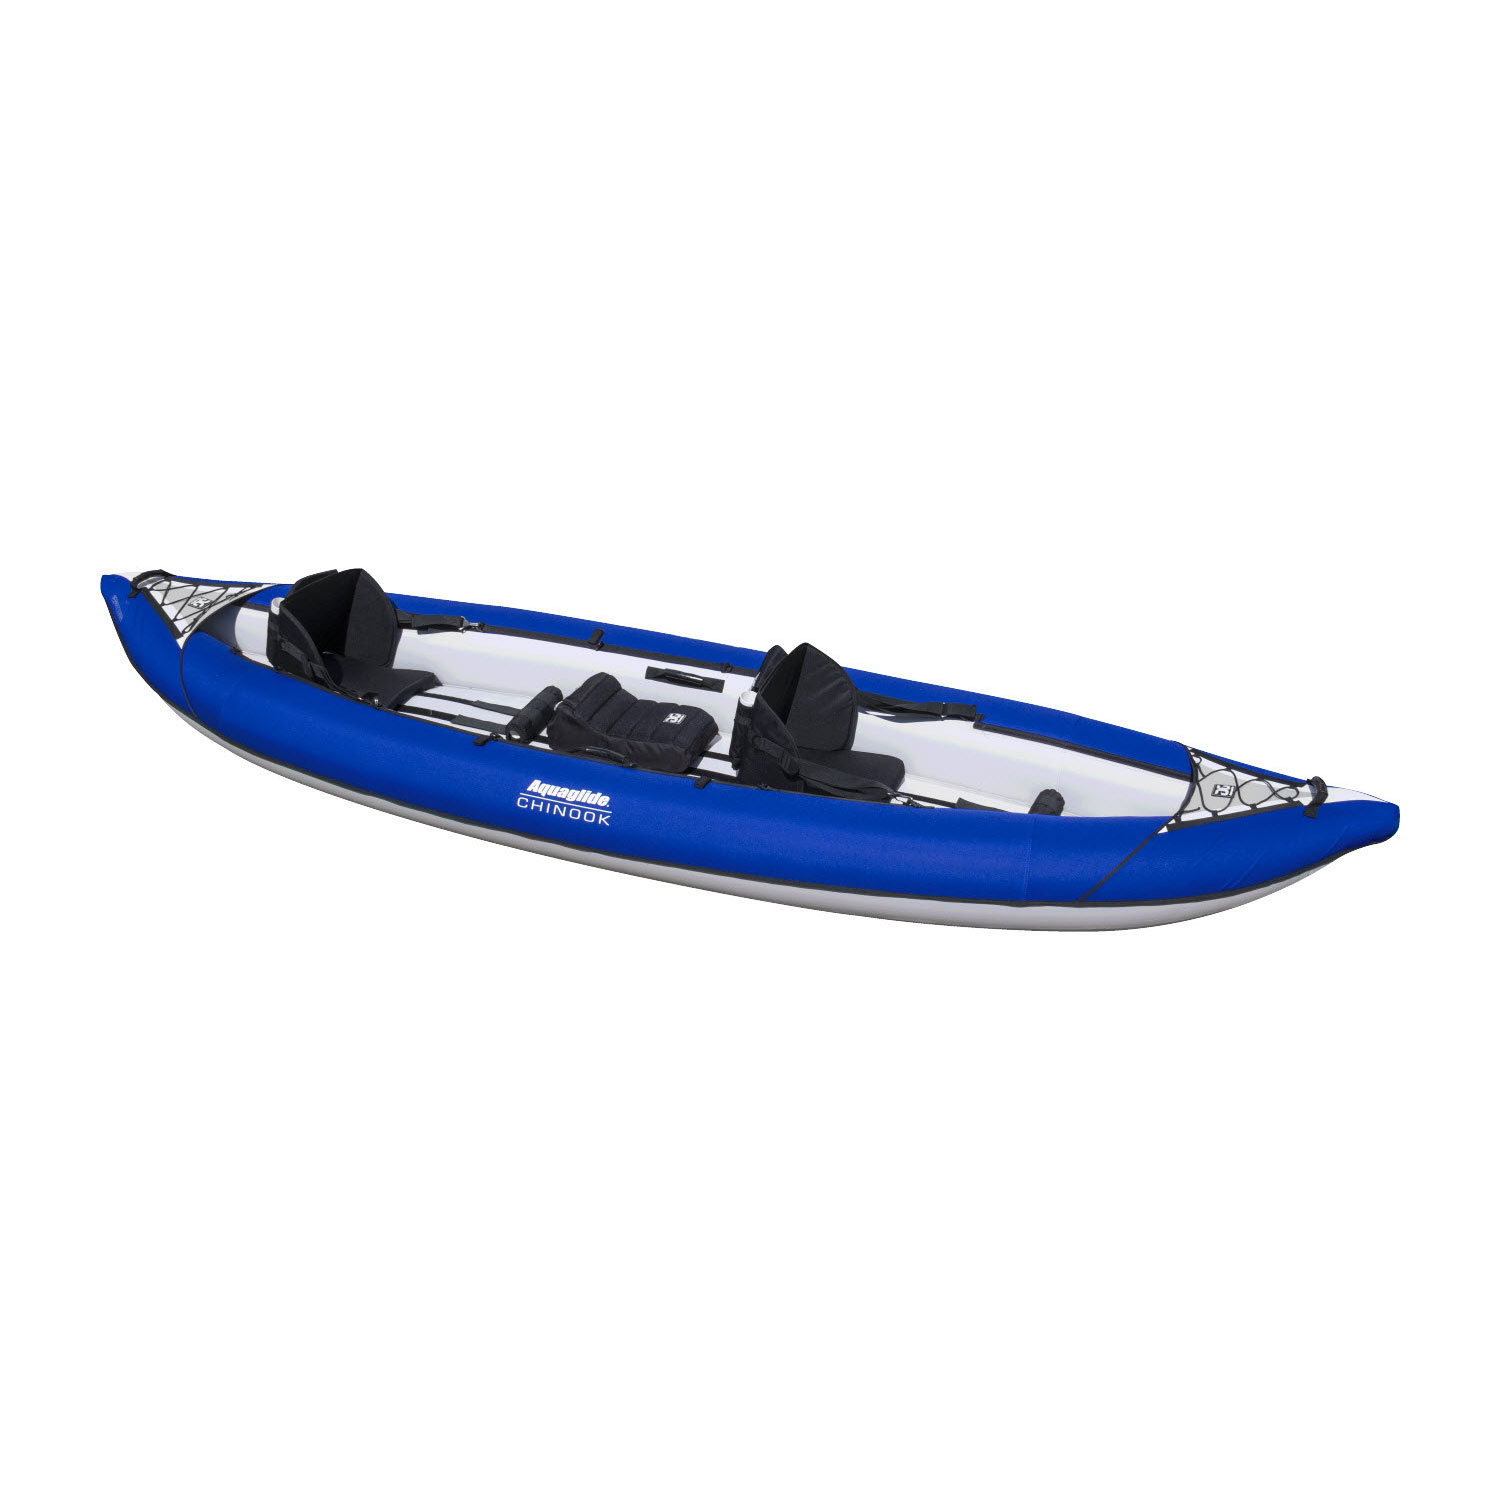 Aquaglide chinook xp tandem xl 3 person inflatable kayak for Rei fishing gear